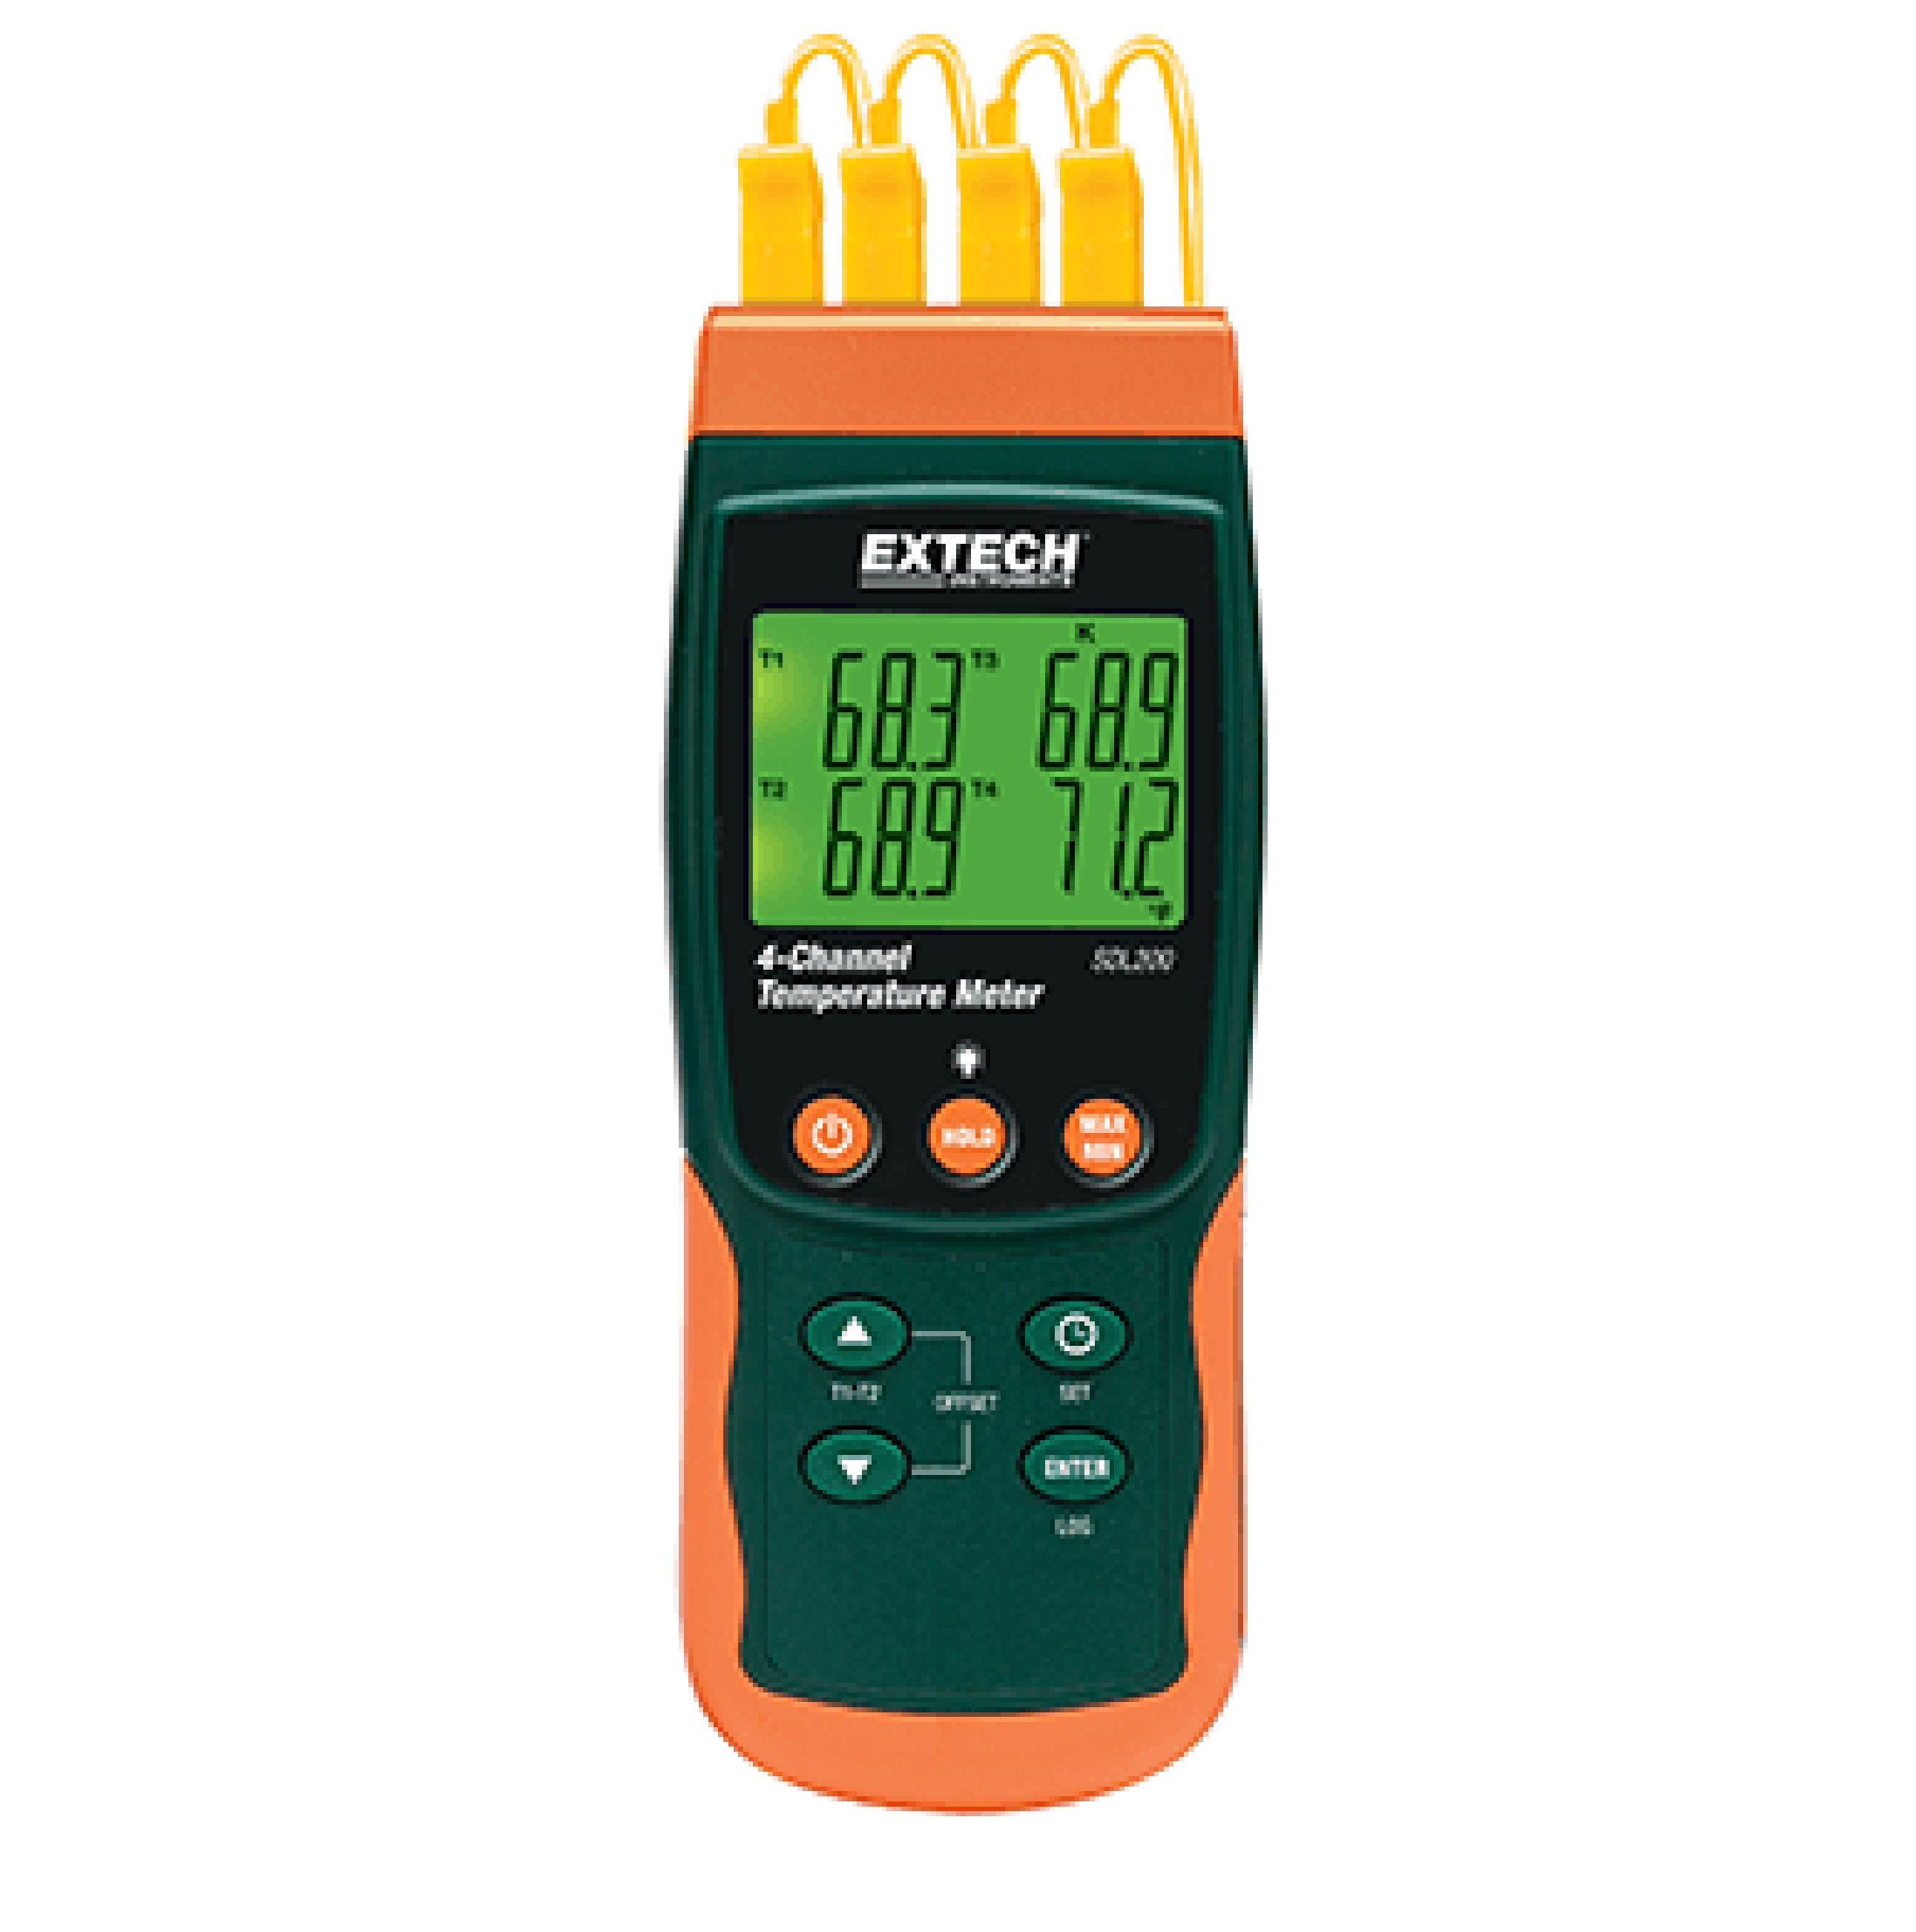 EXTECH SDL200 - 4-Channel Datalogging Thermometer